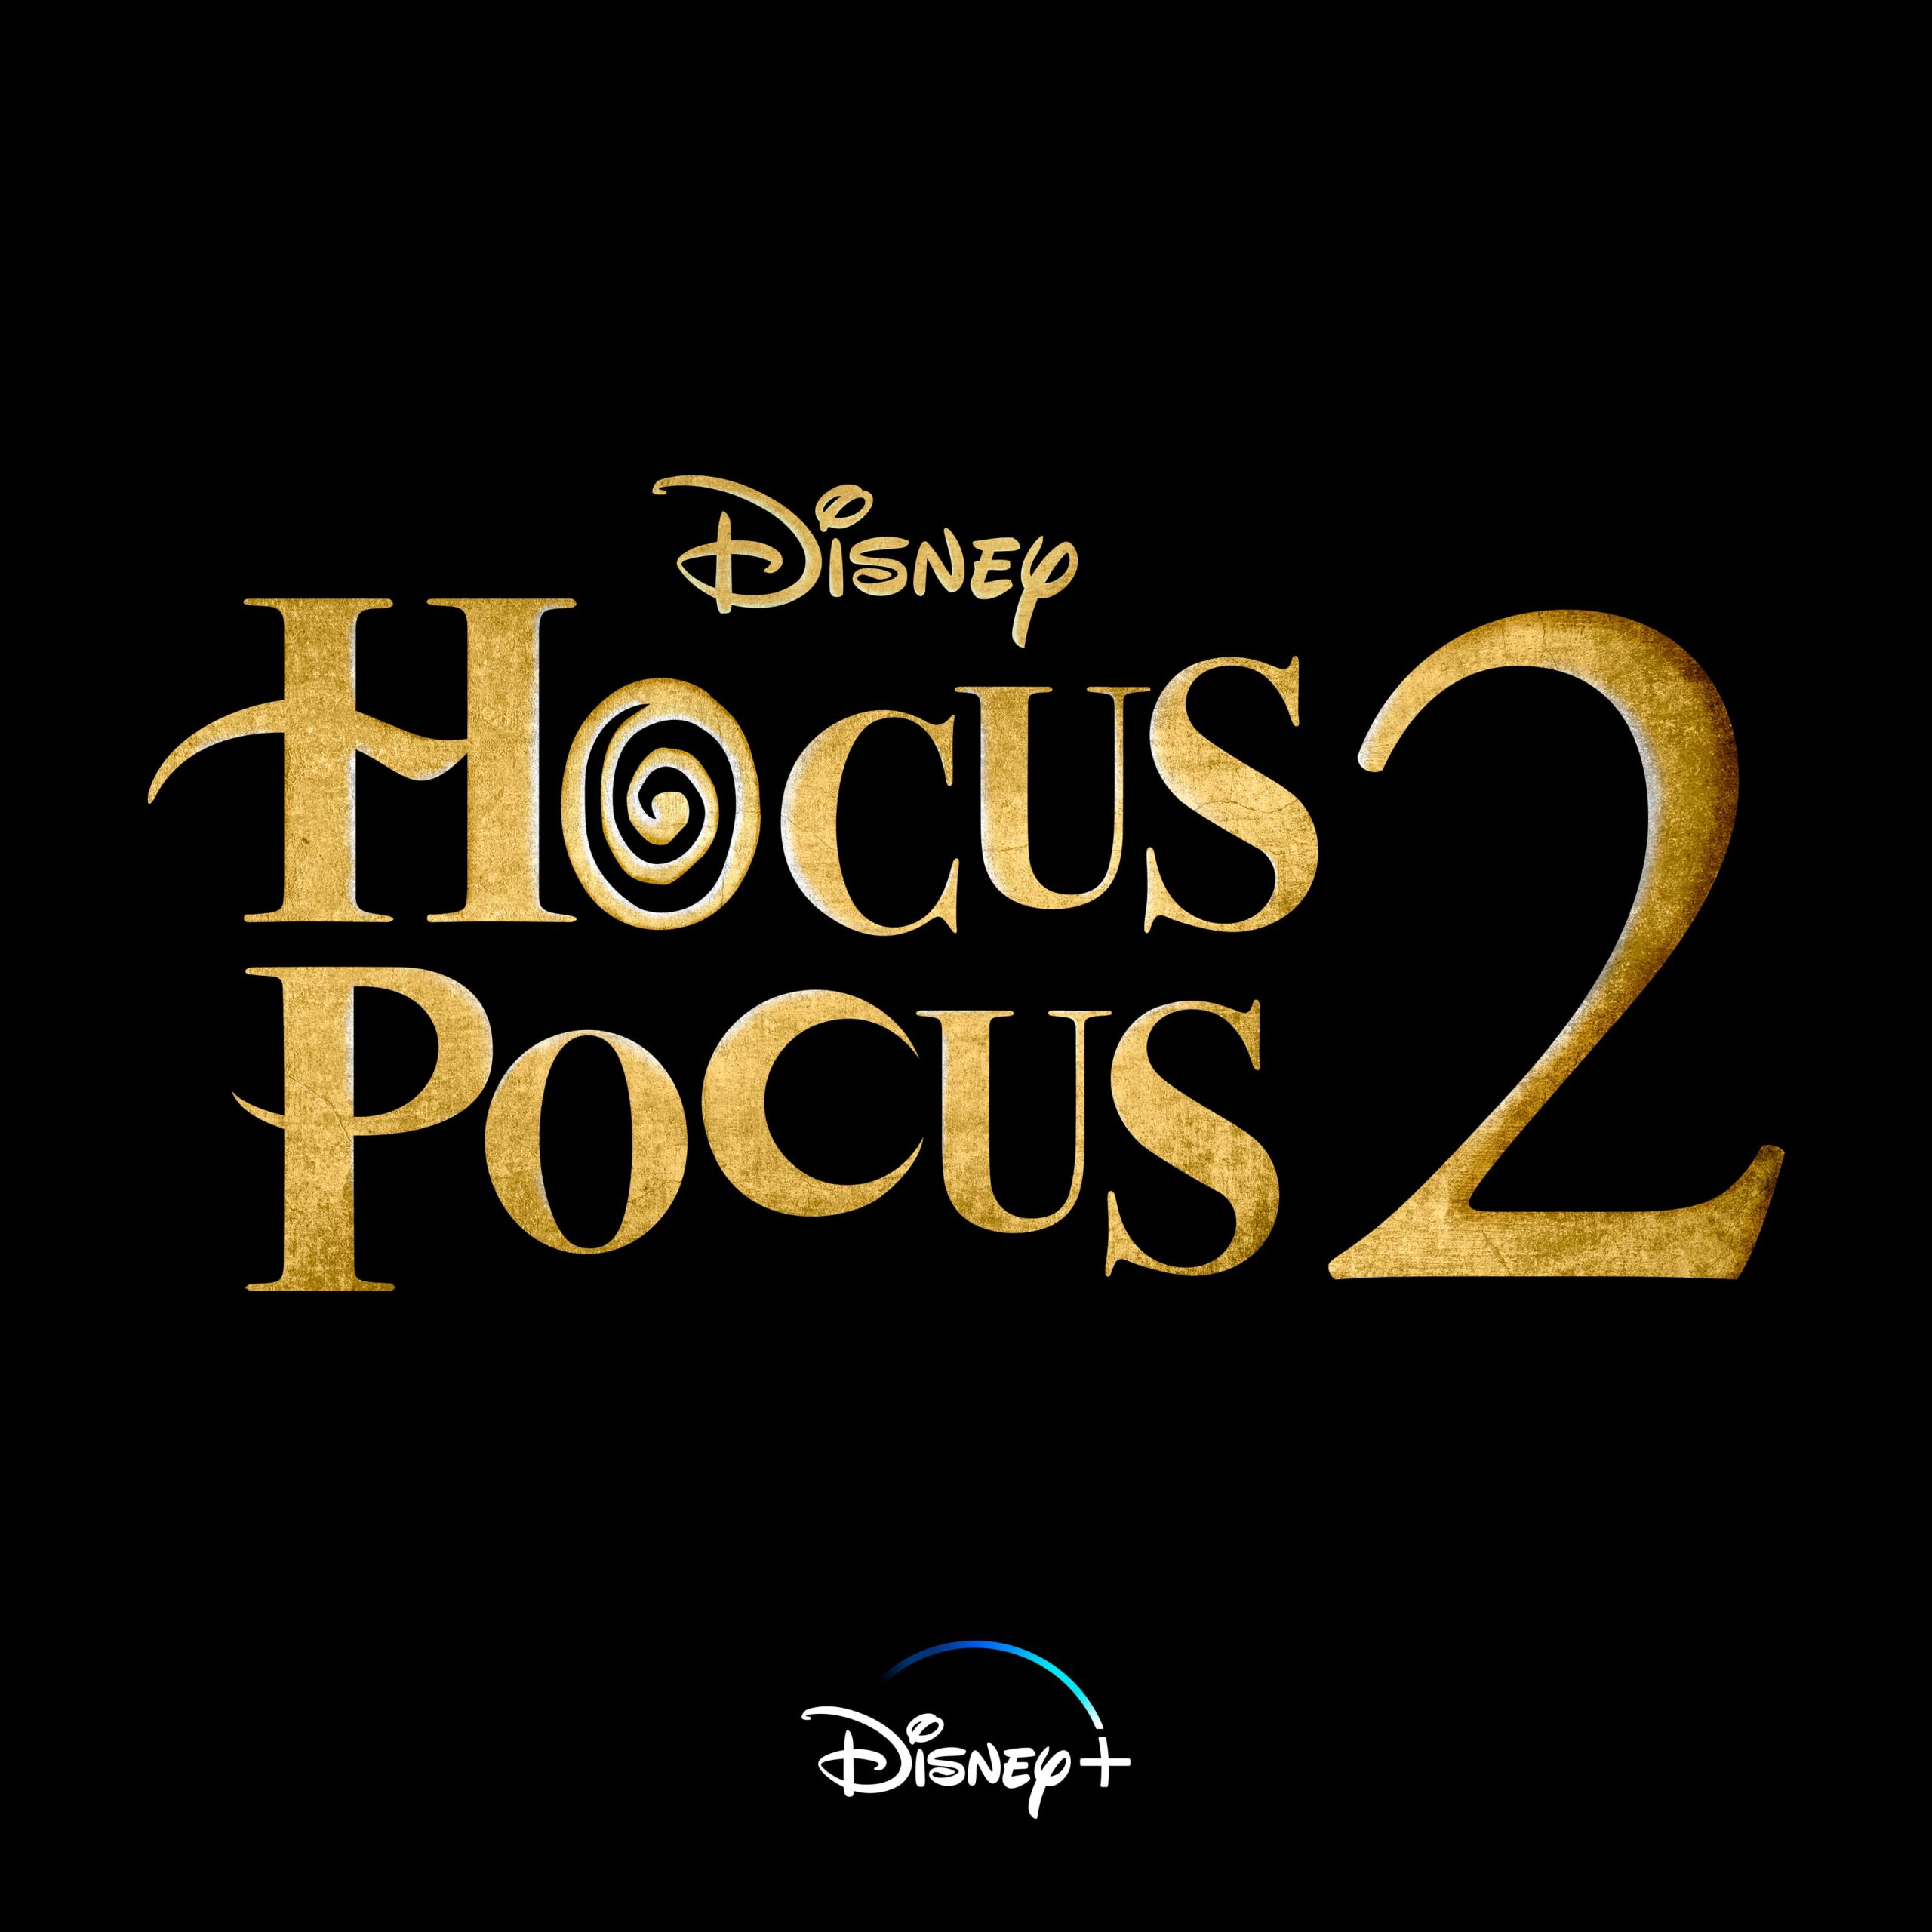 'Hocus Pocus 2' officially set for 2022 release on Disney+